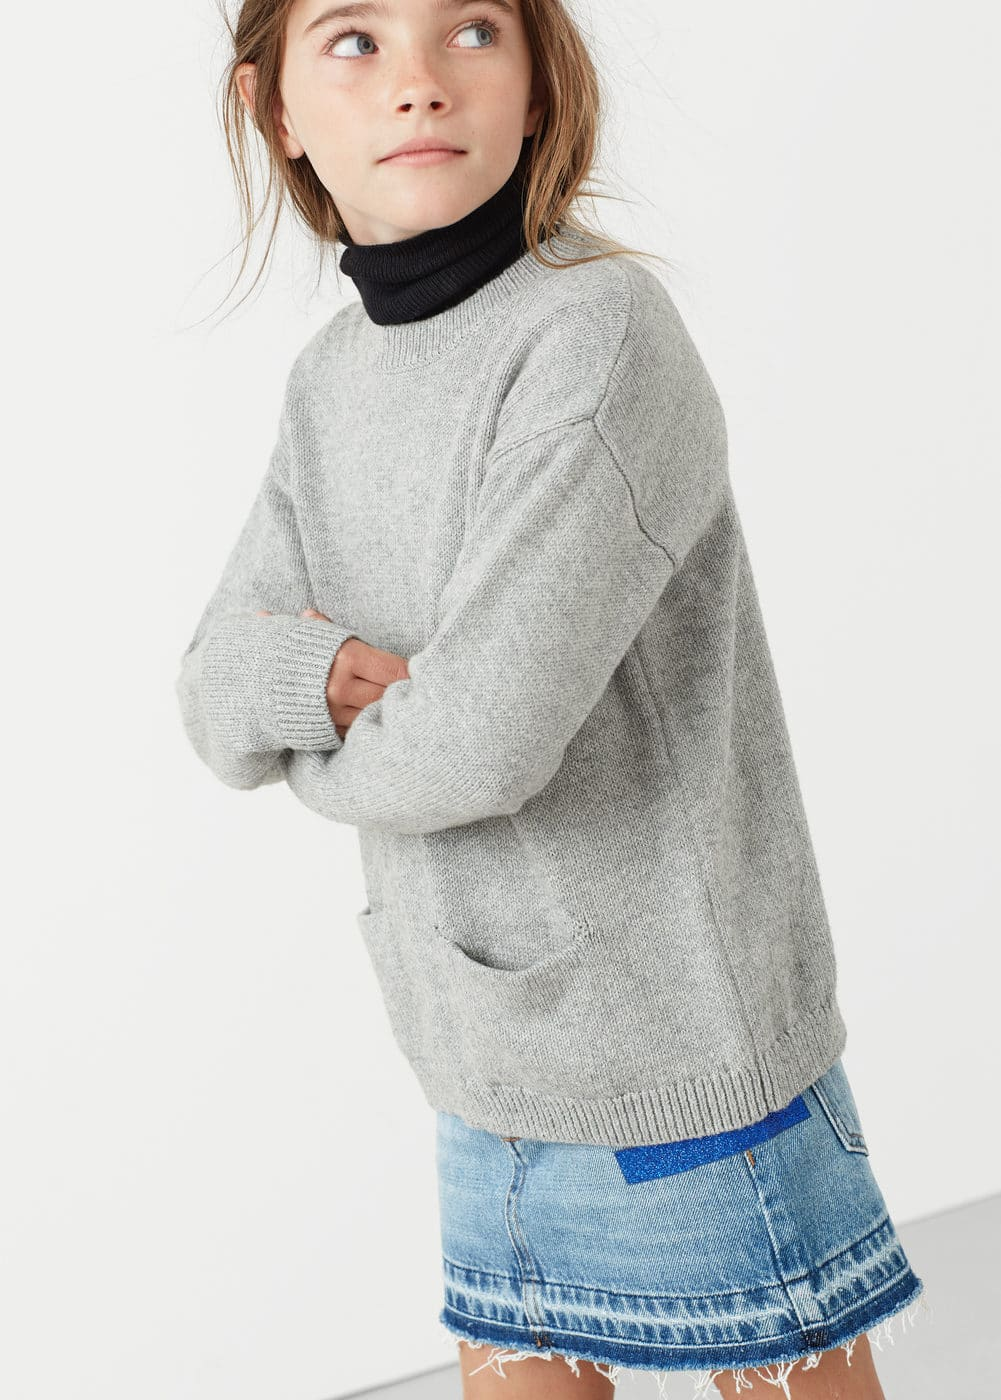 Pockets cotton-blend sweater | MANGO KIDS